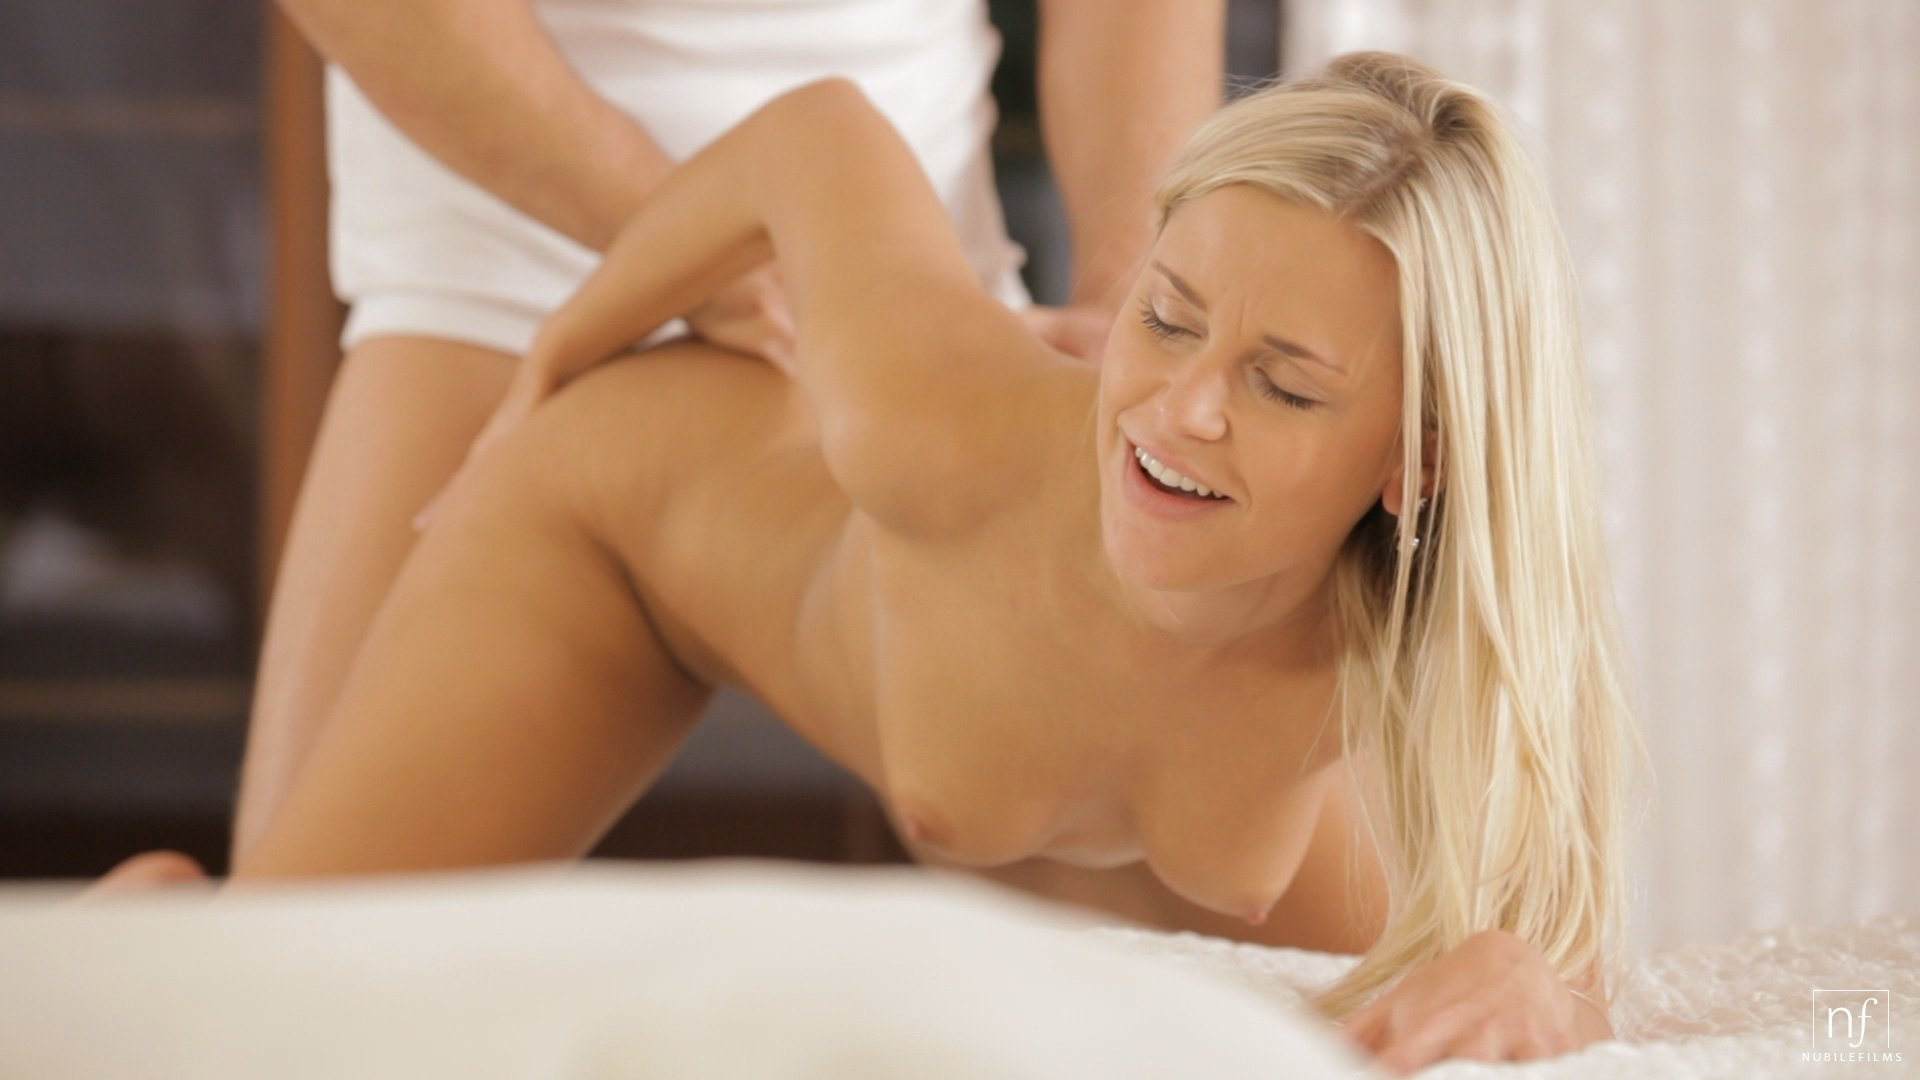 Anal itching and fissures Skinny blonde plunges her pussy with a toy